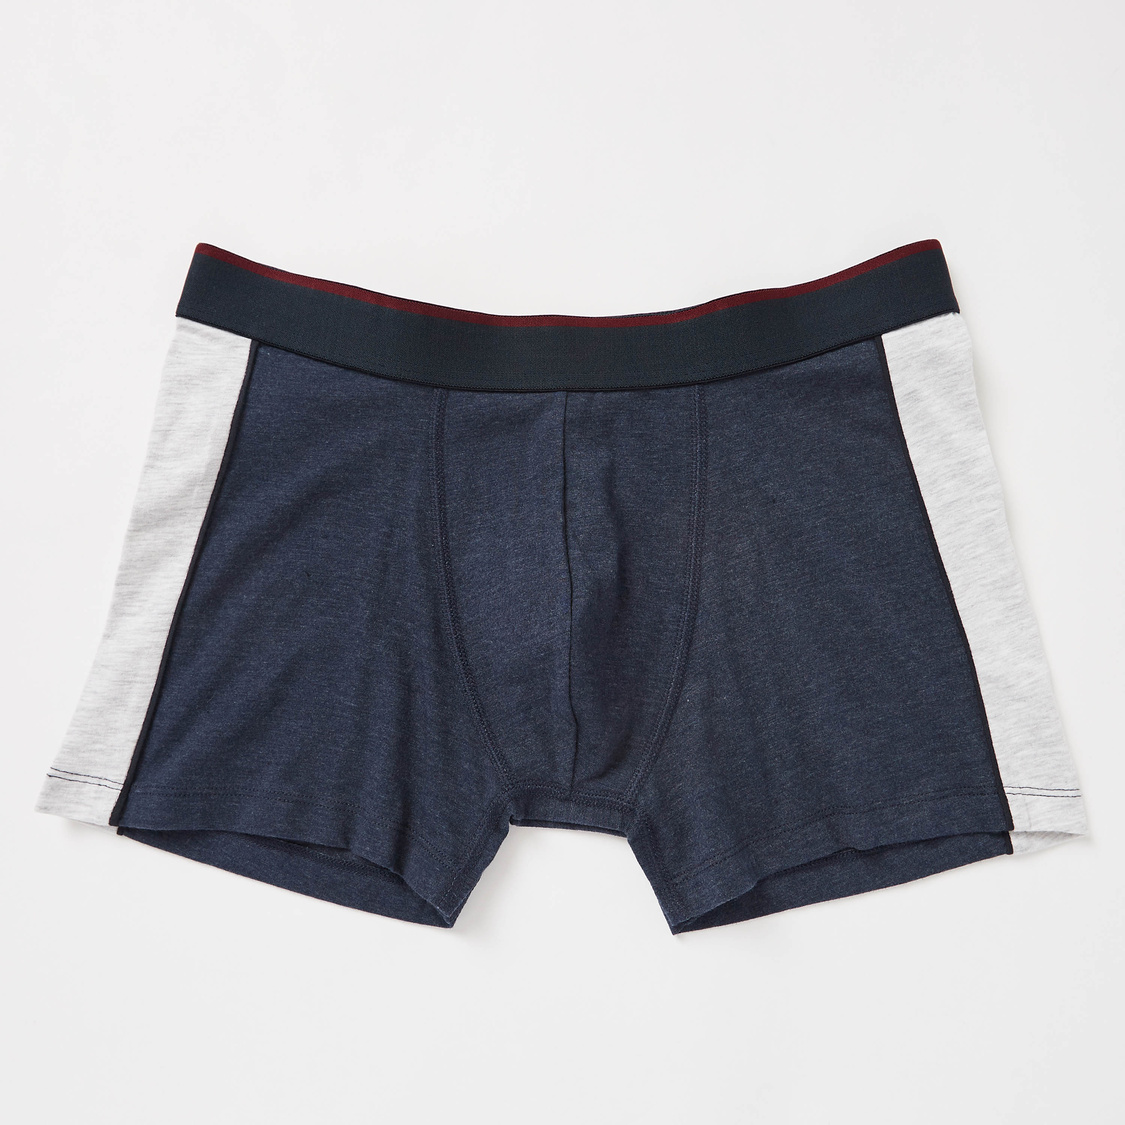 Set of 2 - Printed Trunks with Elasticised Waistband